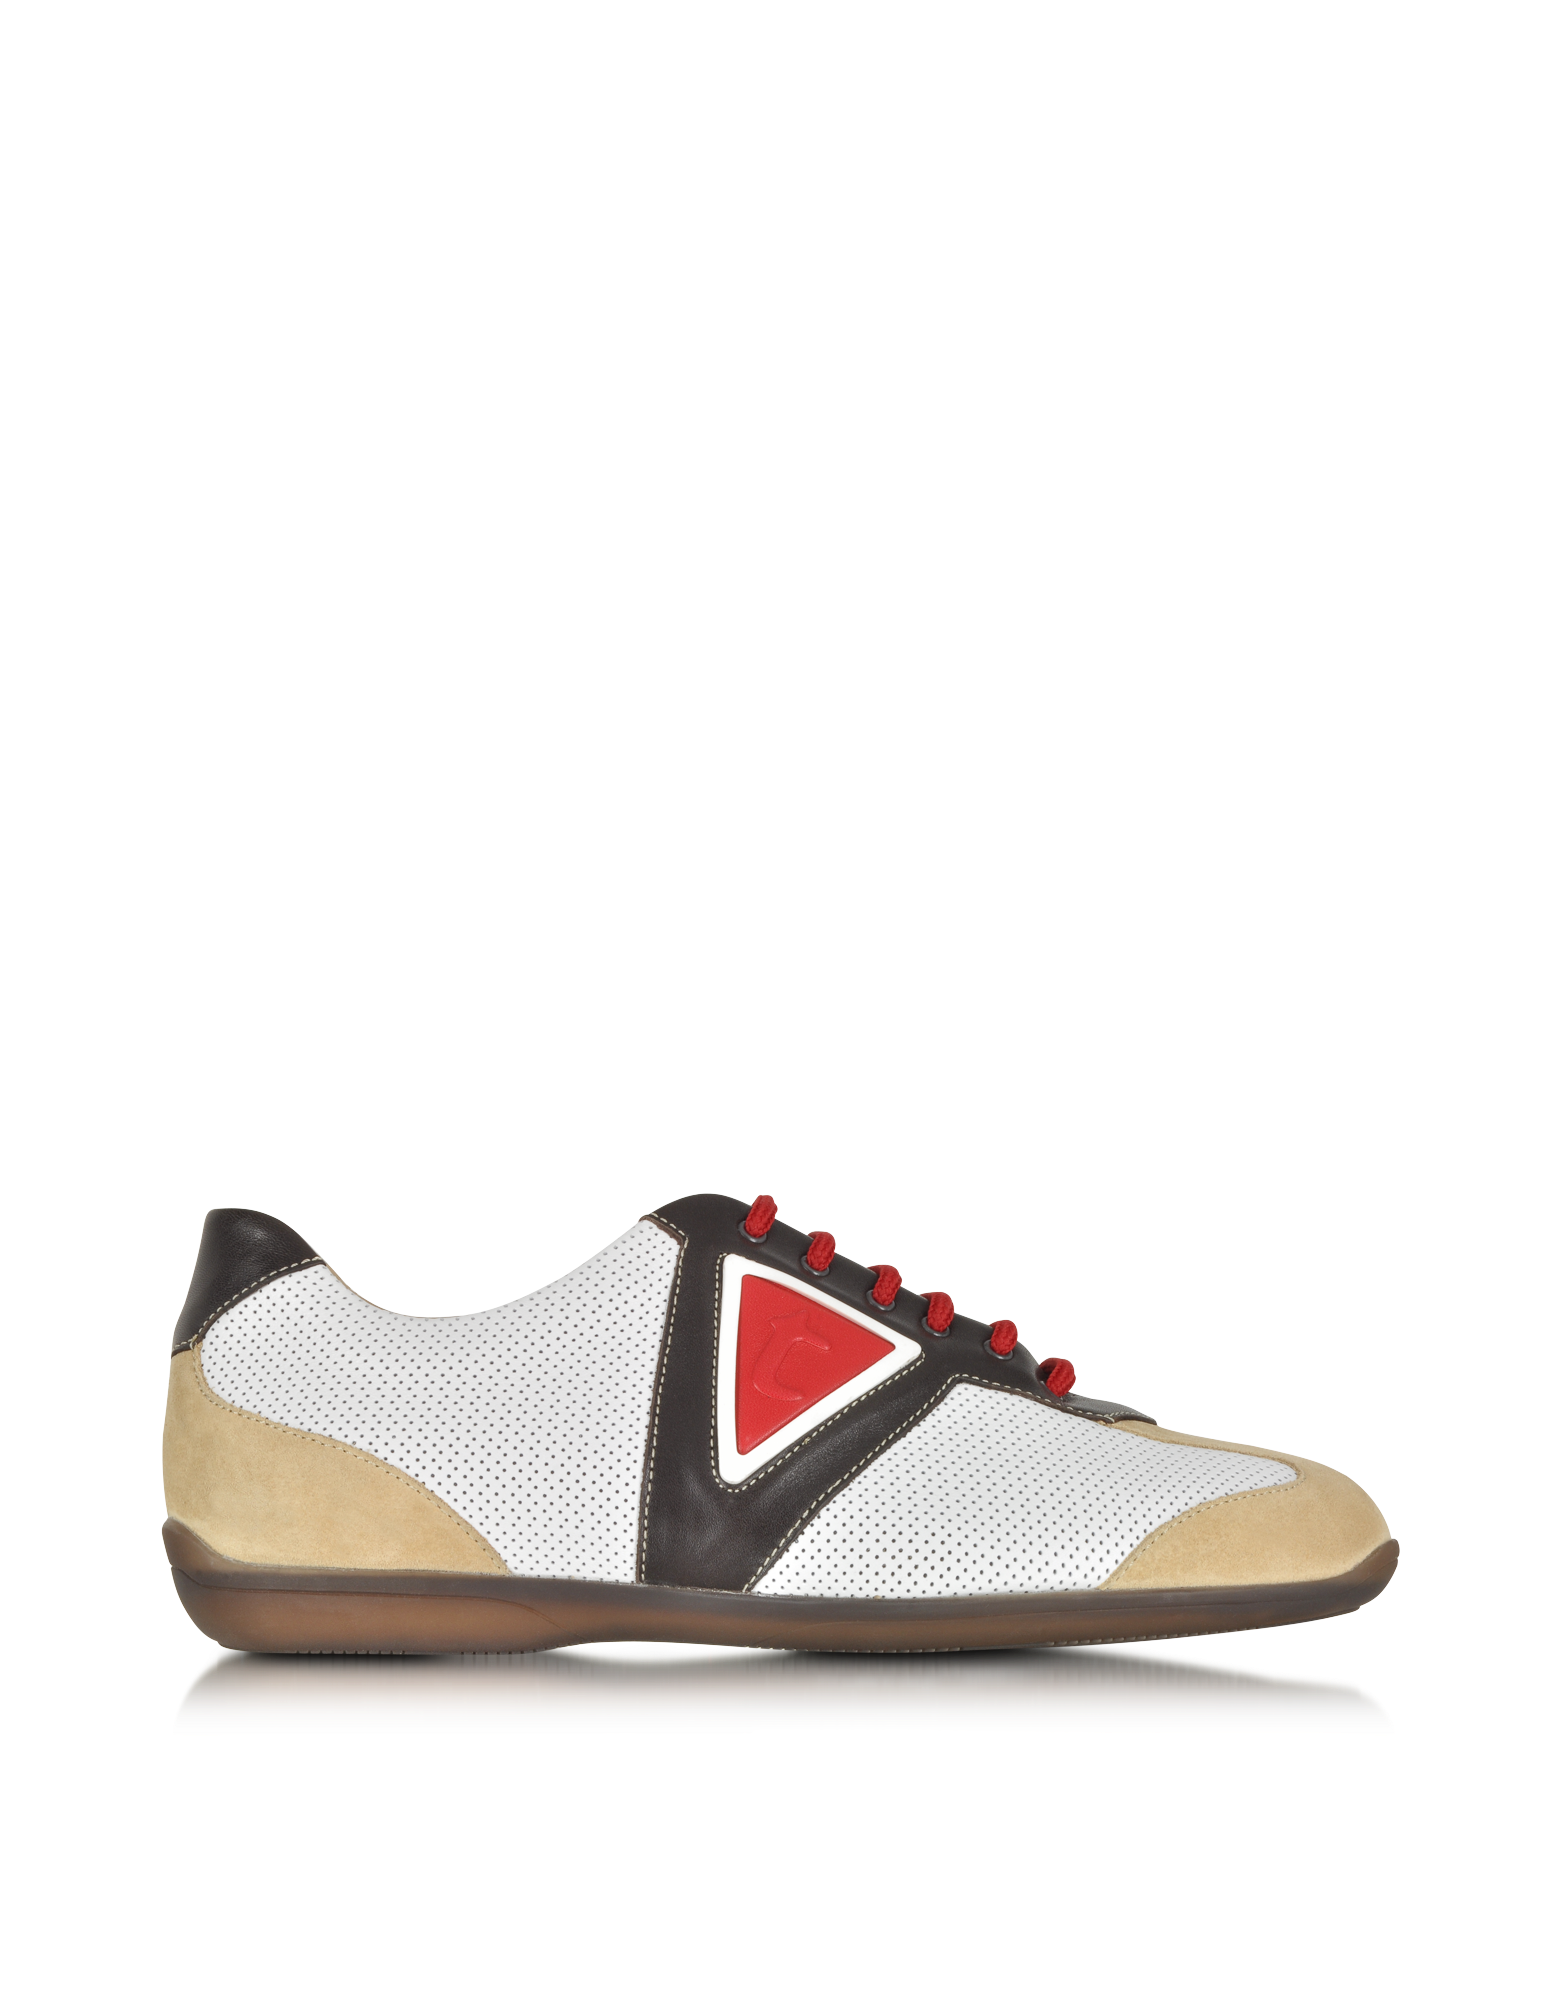 Image of Multicolor Leather and Suede Sneaker